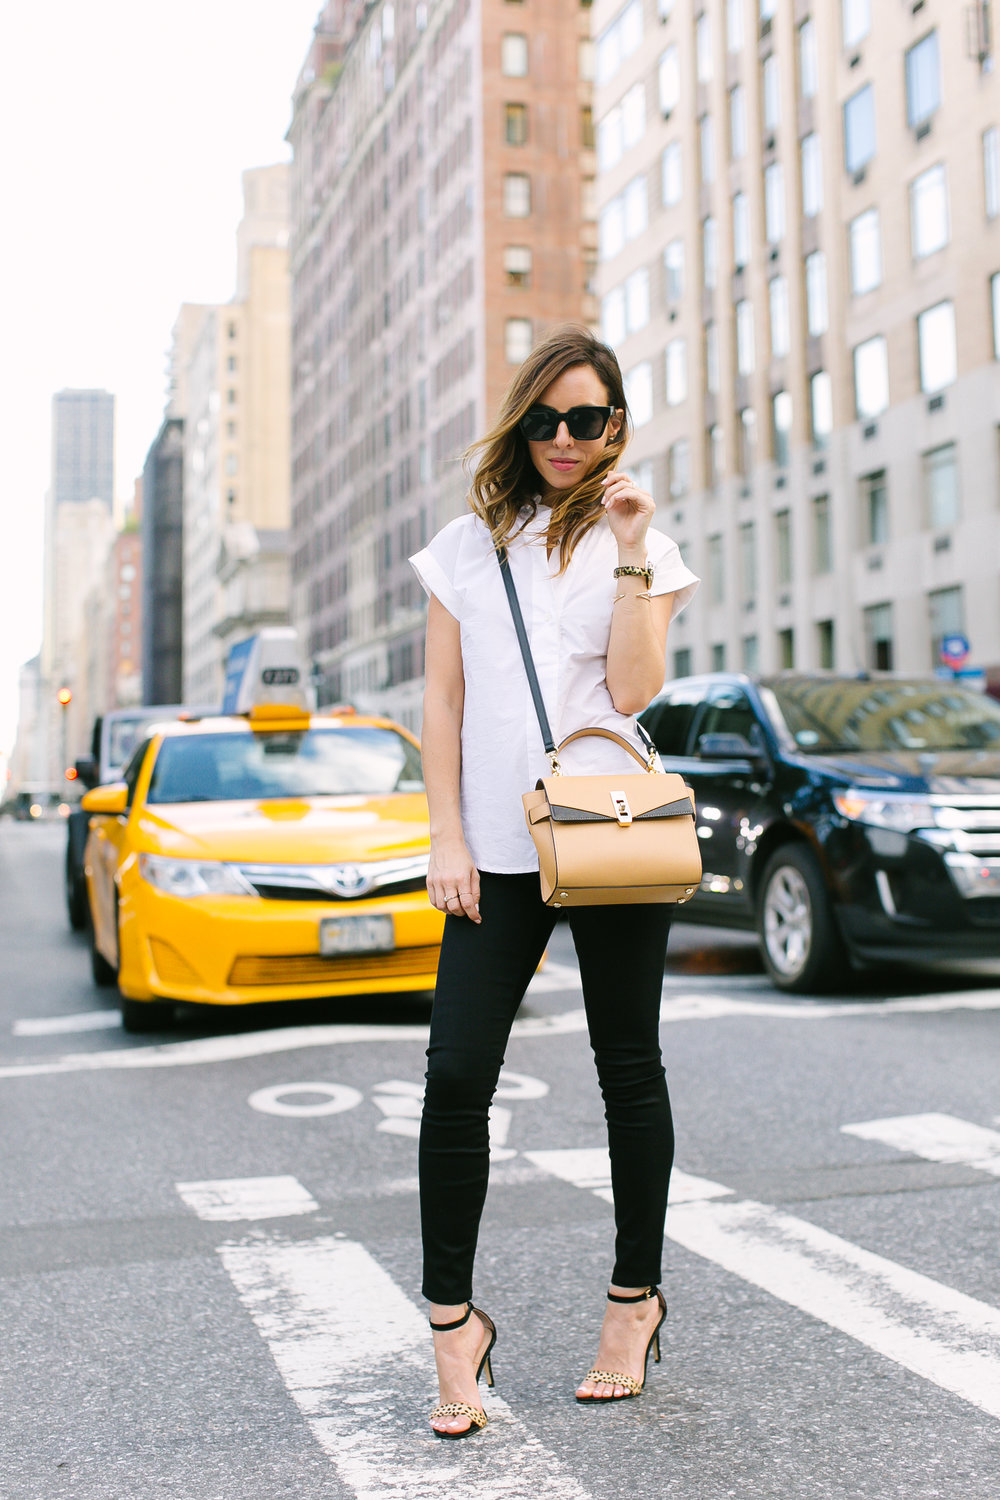 SydneOutfit2and3-15.JPG